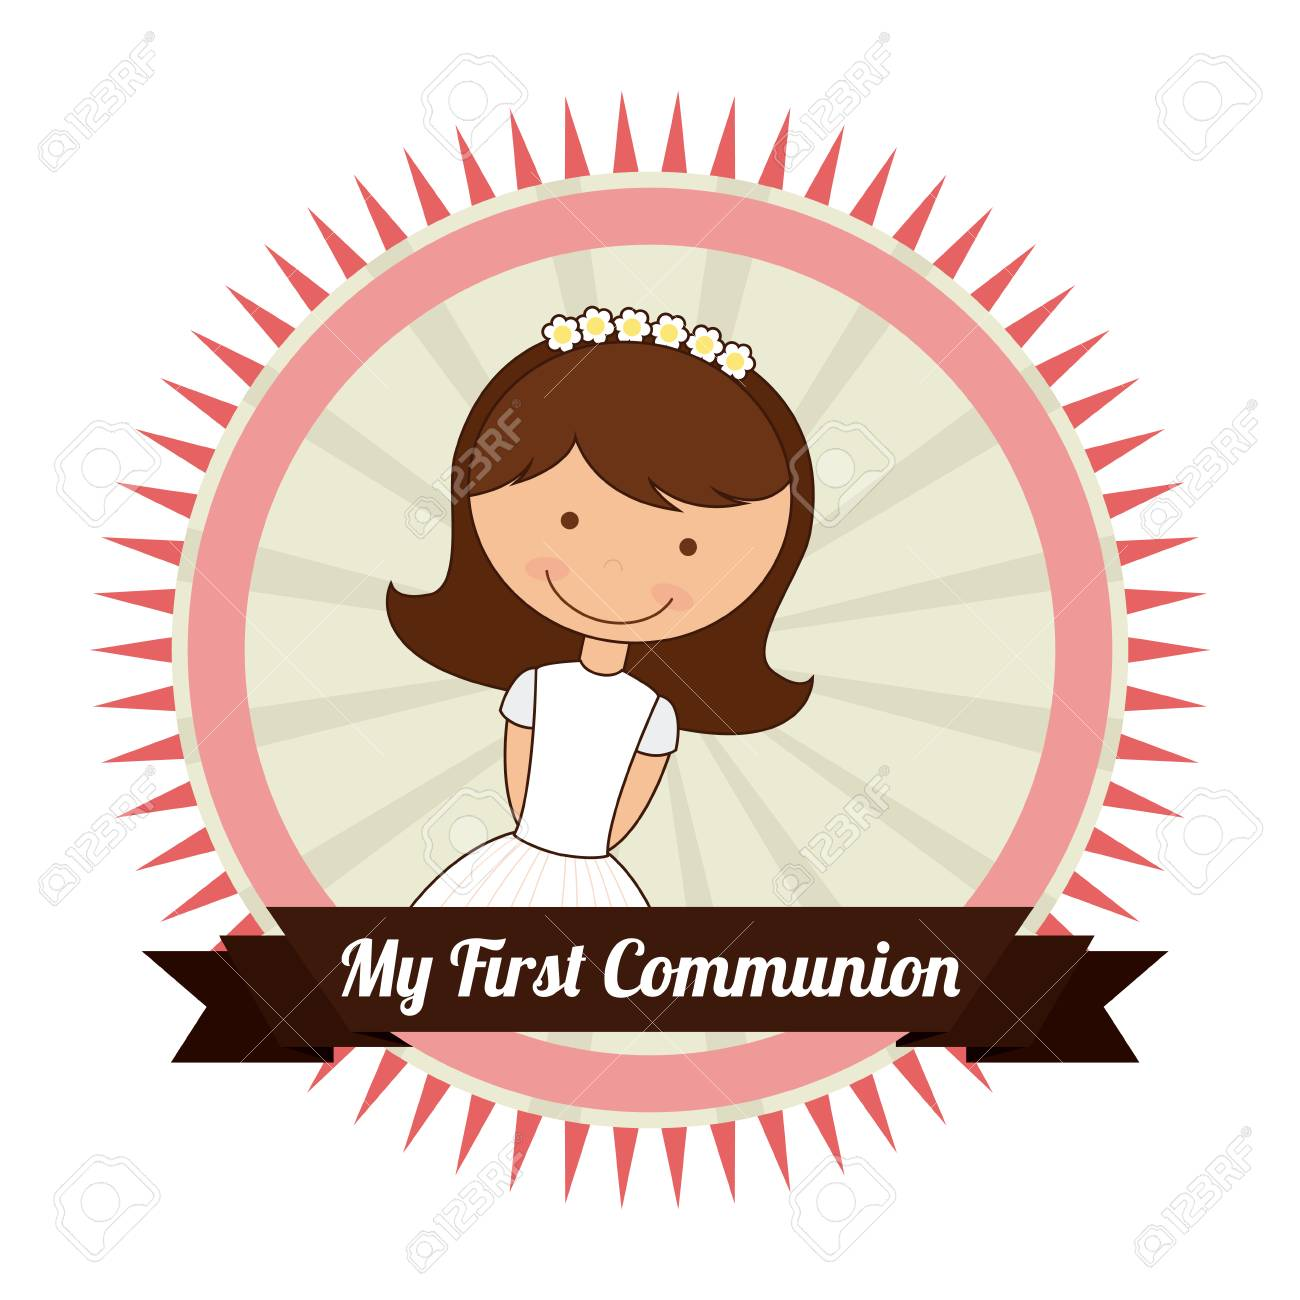 my first communion design, vector illustration eps10 graphic.